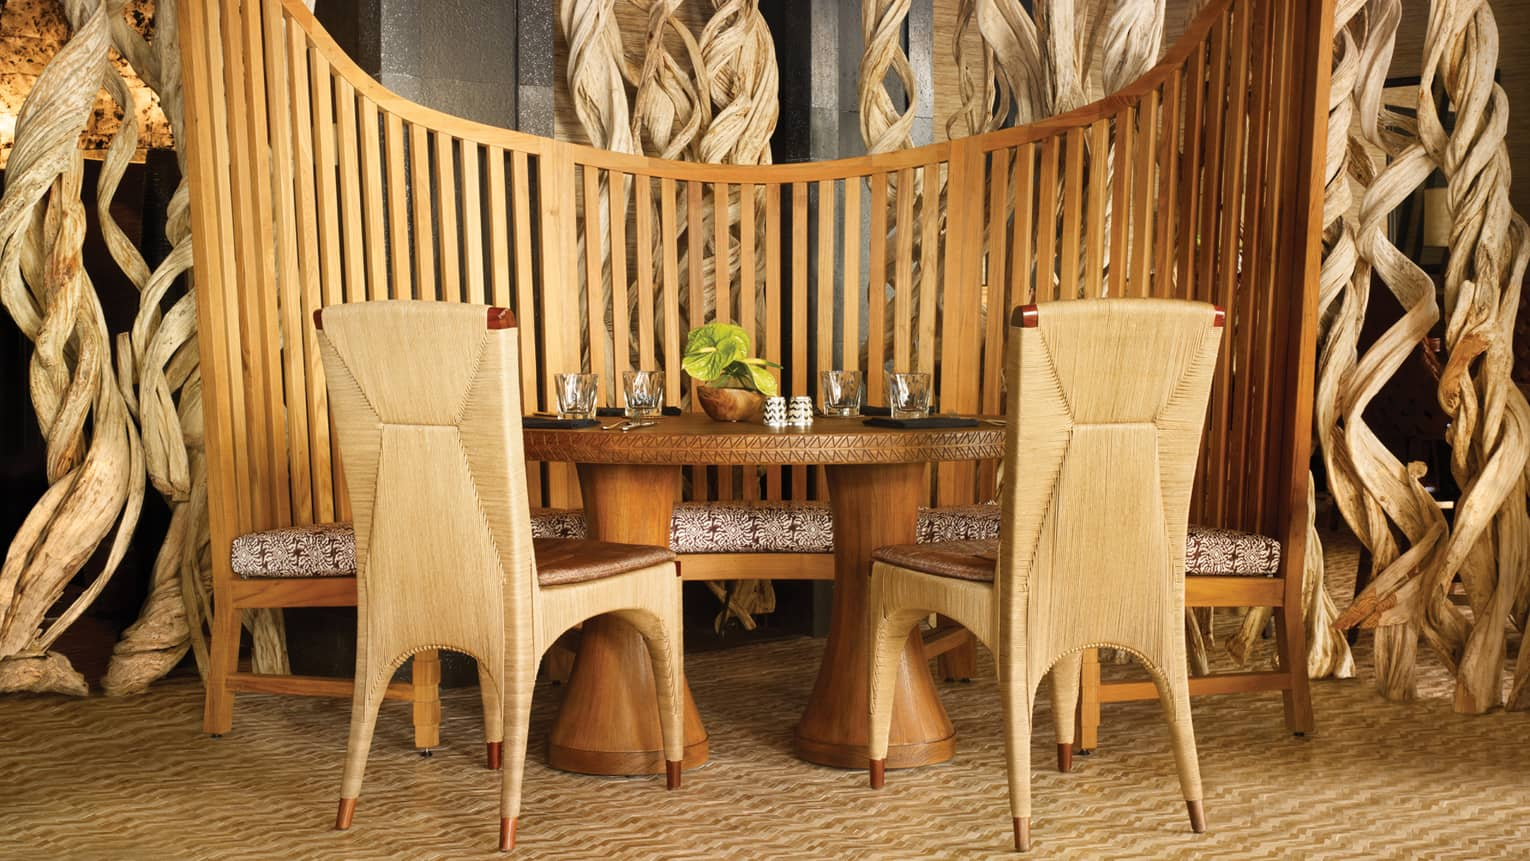 Teak booth, table, wood chairs in View Restaurant lounge